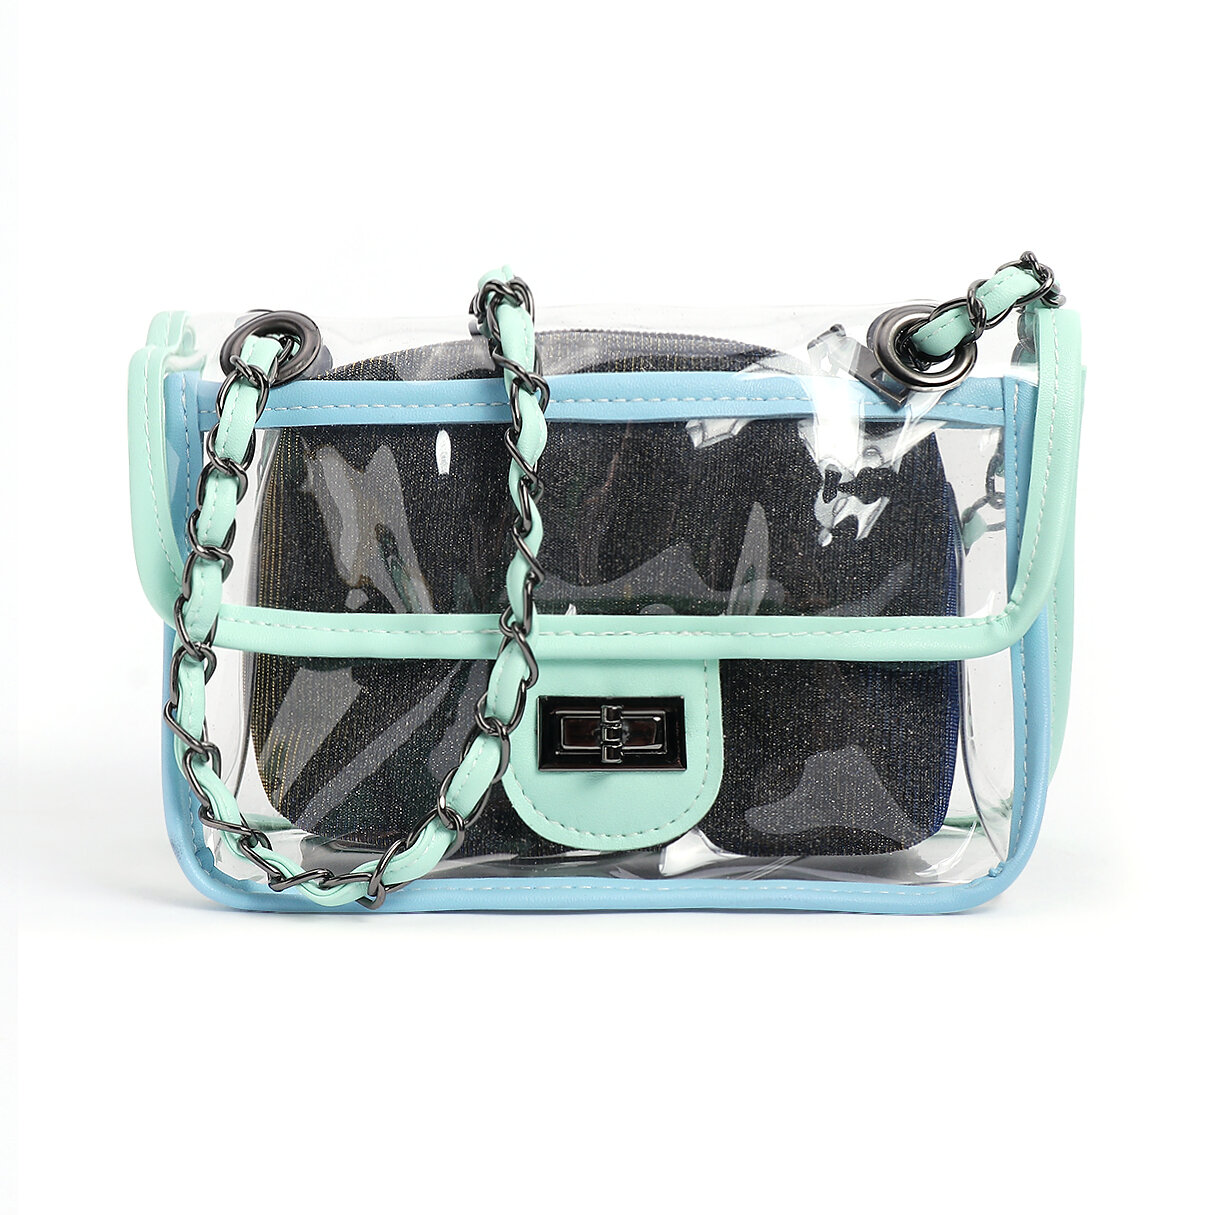 Green PVC Crossbody bags with Small PU Bags